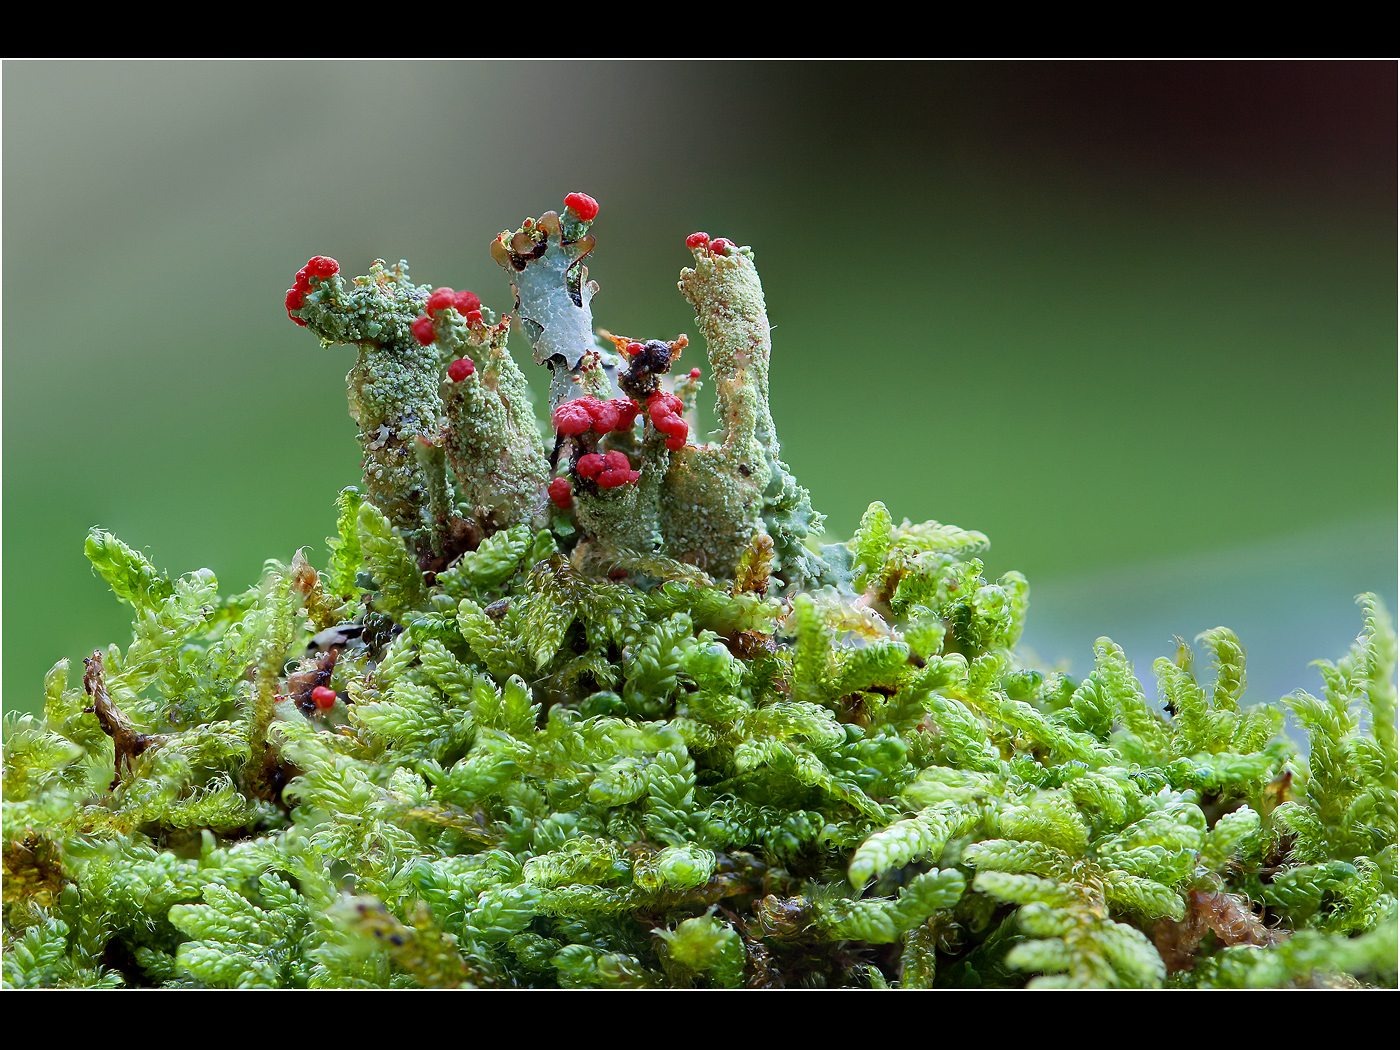 Cladonia Lichen in Flower